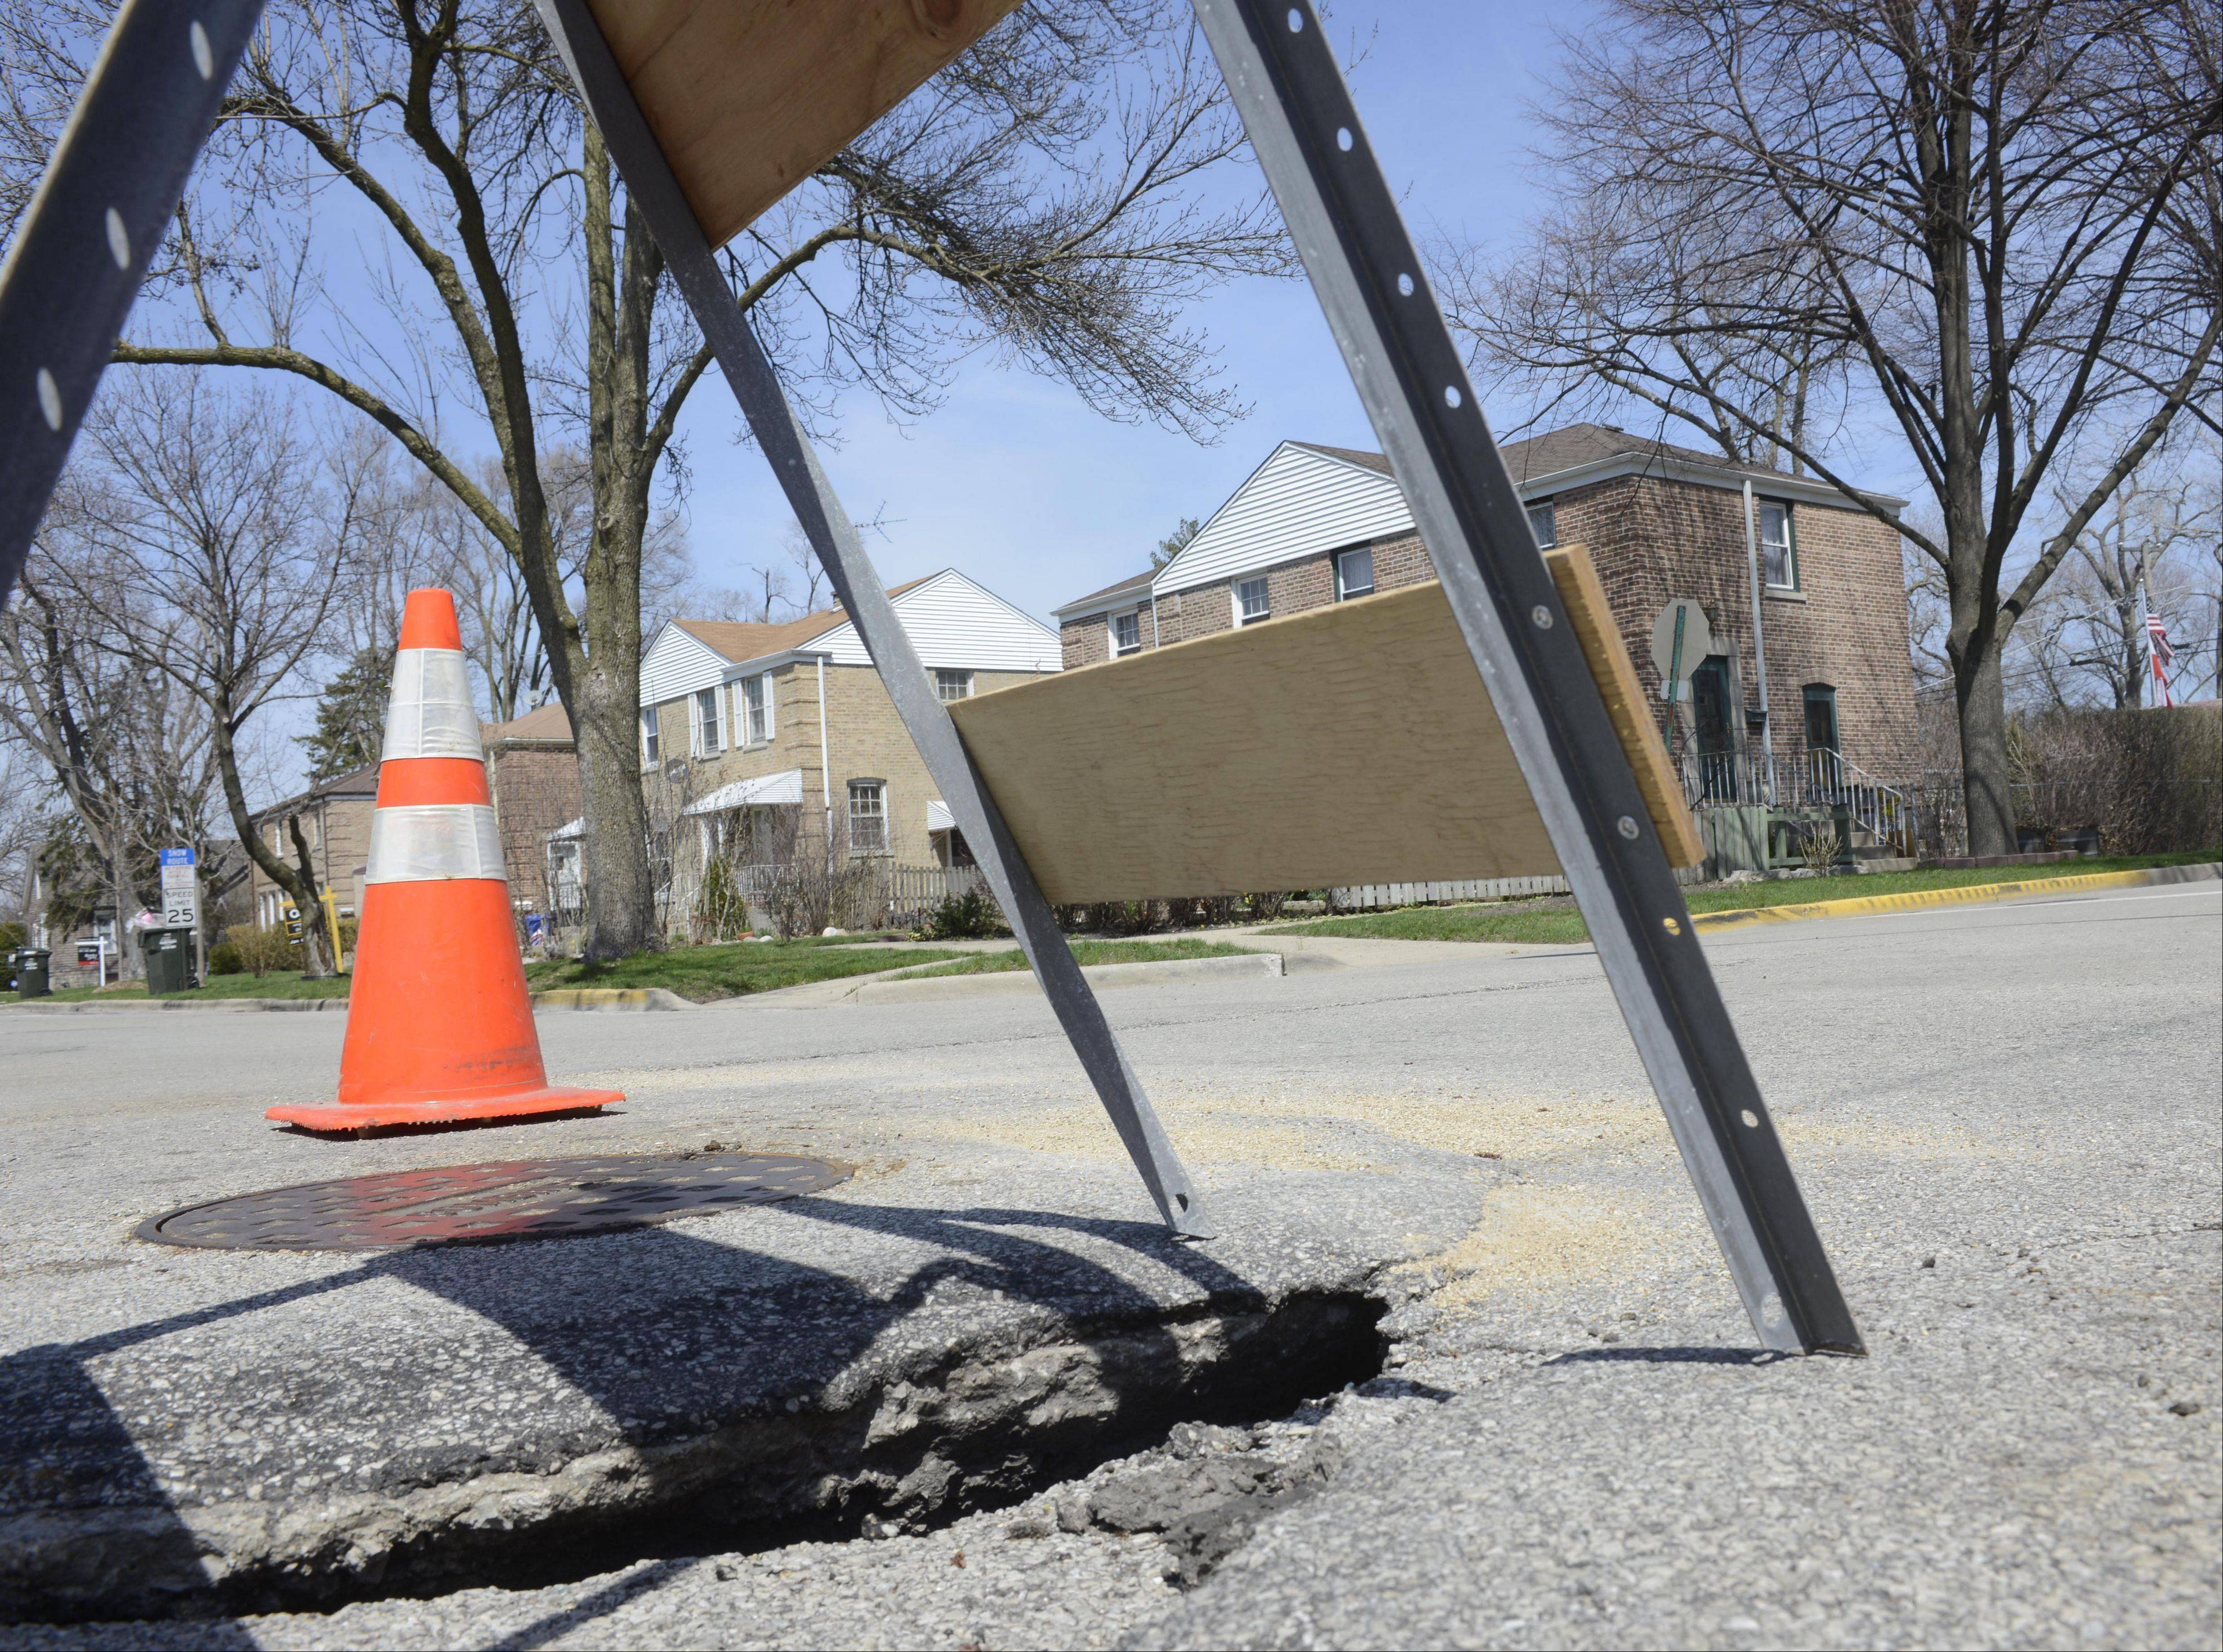 The pavement around a manhole cover is sinking at the intersection of Riverview Avenue and White Street in Des Plaines Monday.